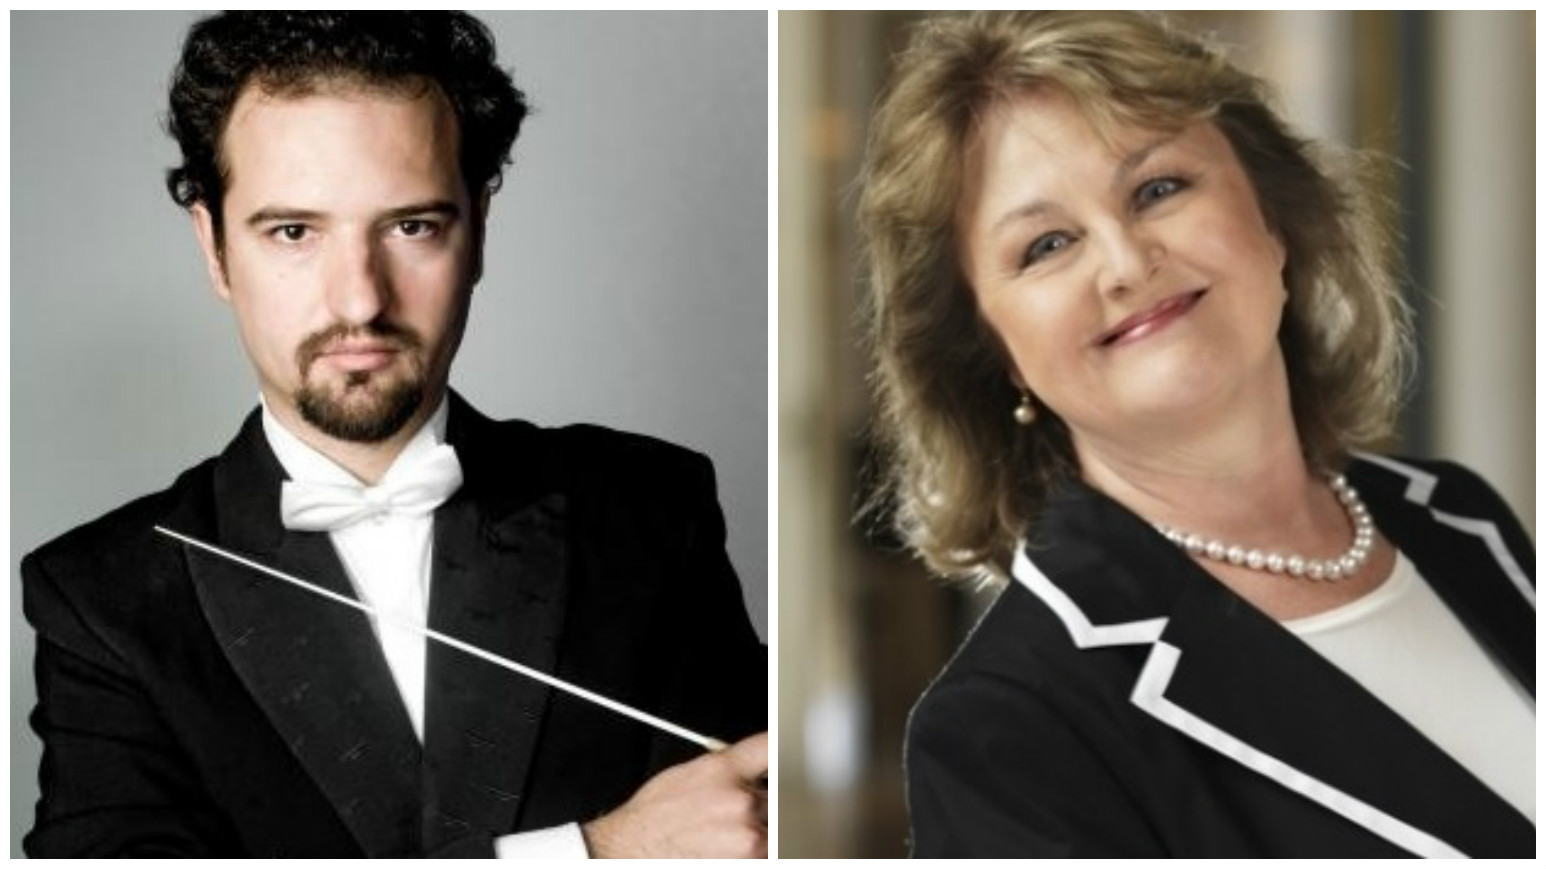 World class bel canto: the legendary soprano Edita Gruberová and conductor Peter Valentovič perform at the Municipal House in Prague